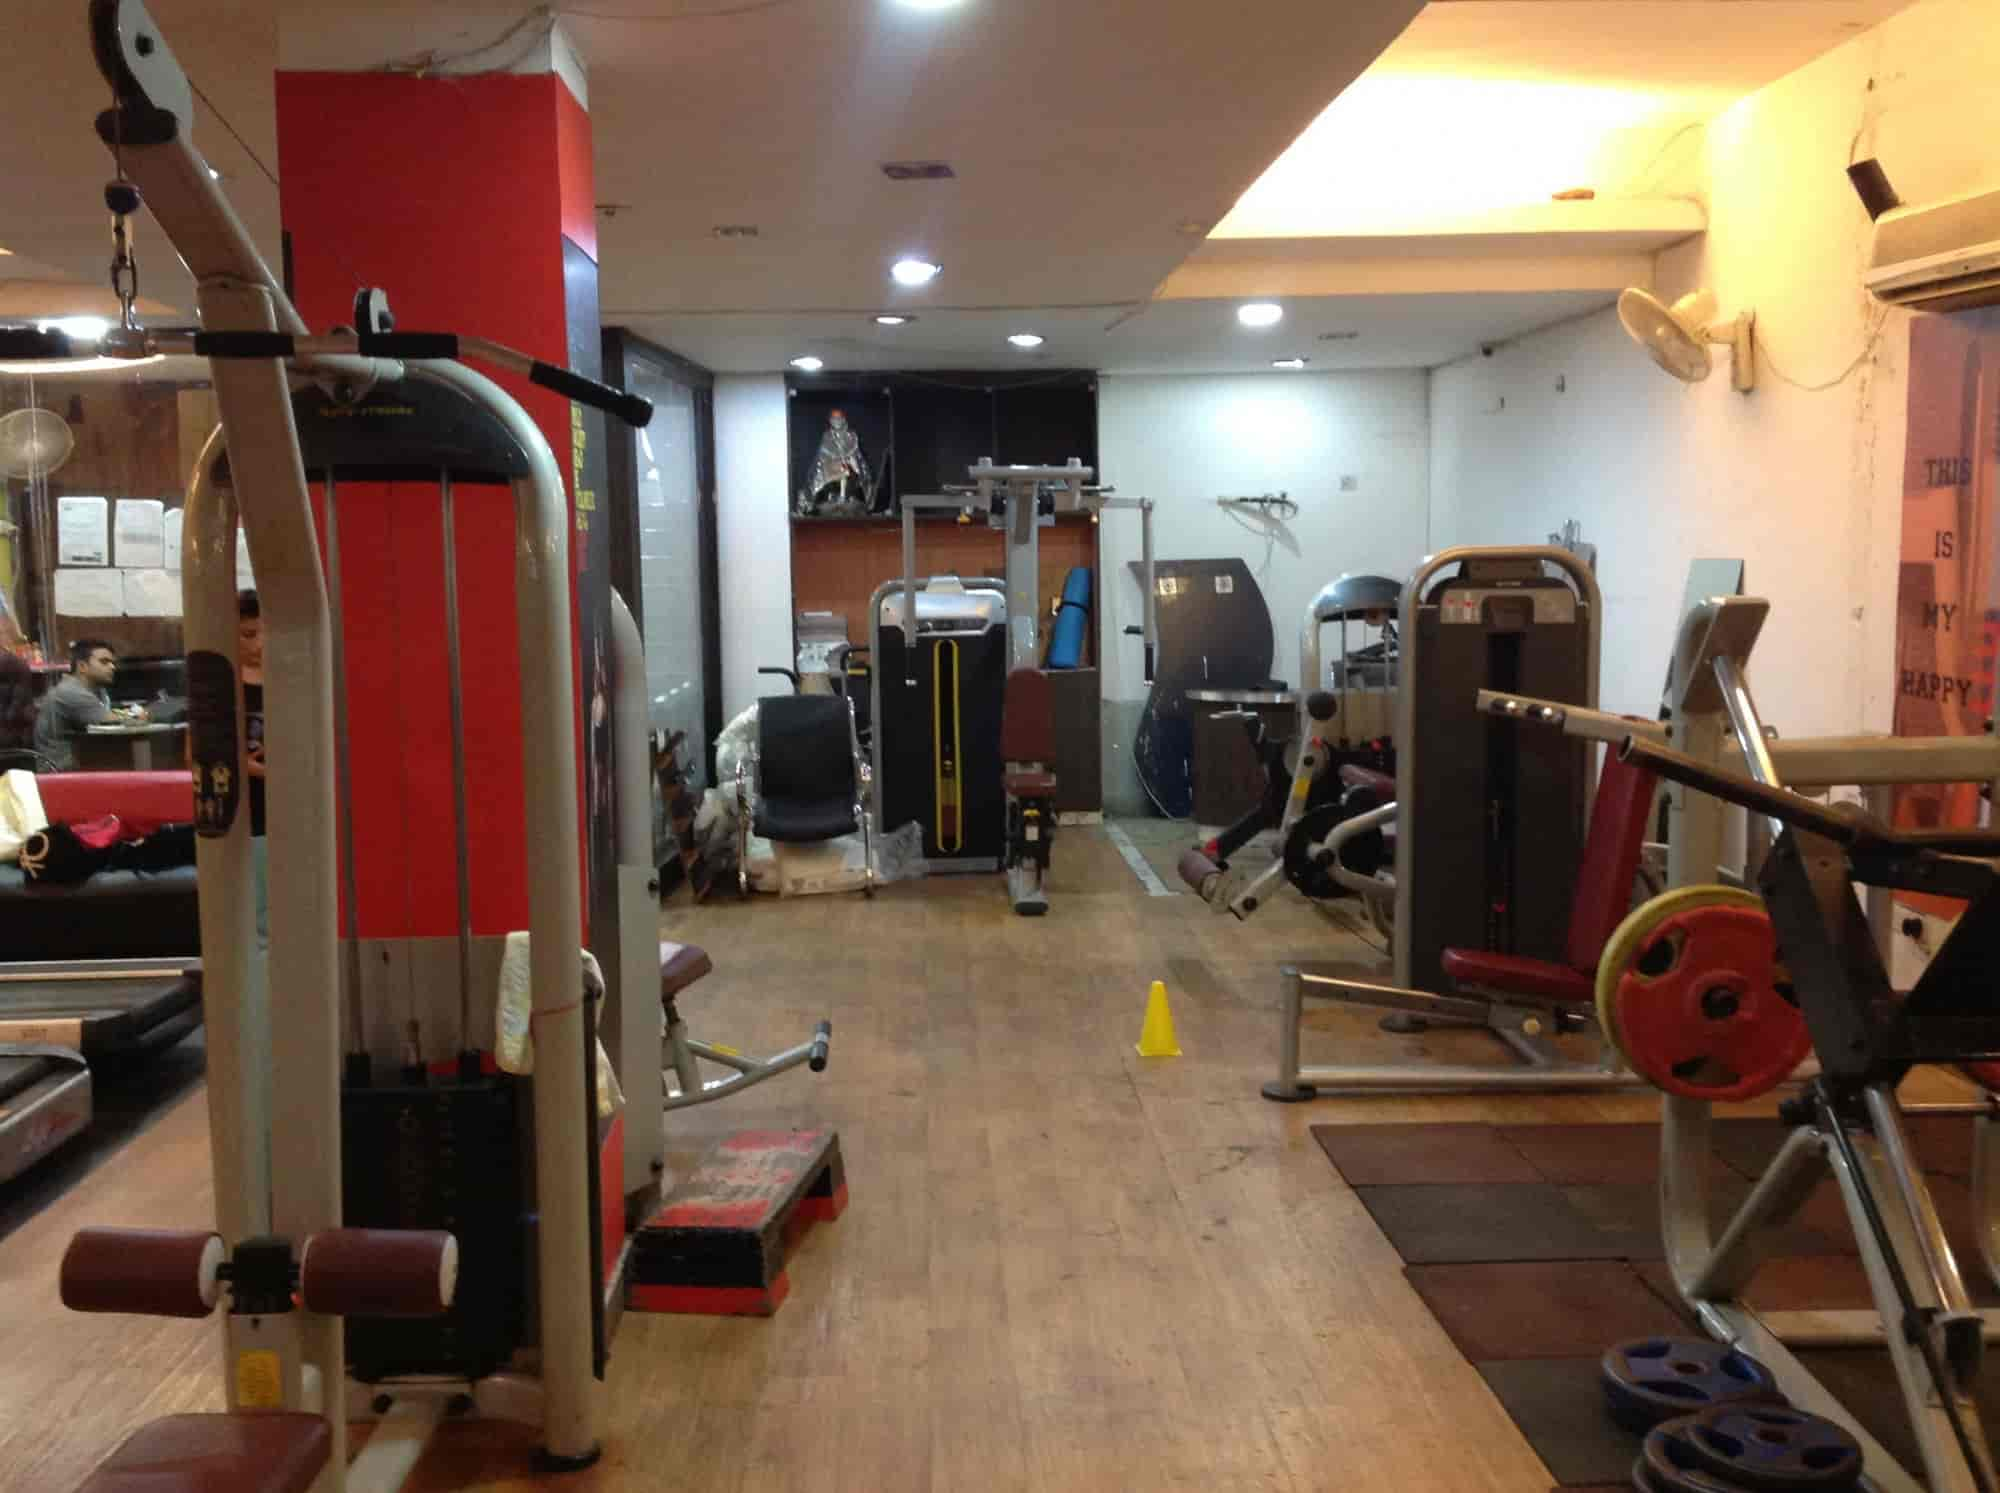 H2o Fitness. Seguici Su With H2o Fitness. Health Club At Ho Fitness ...